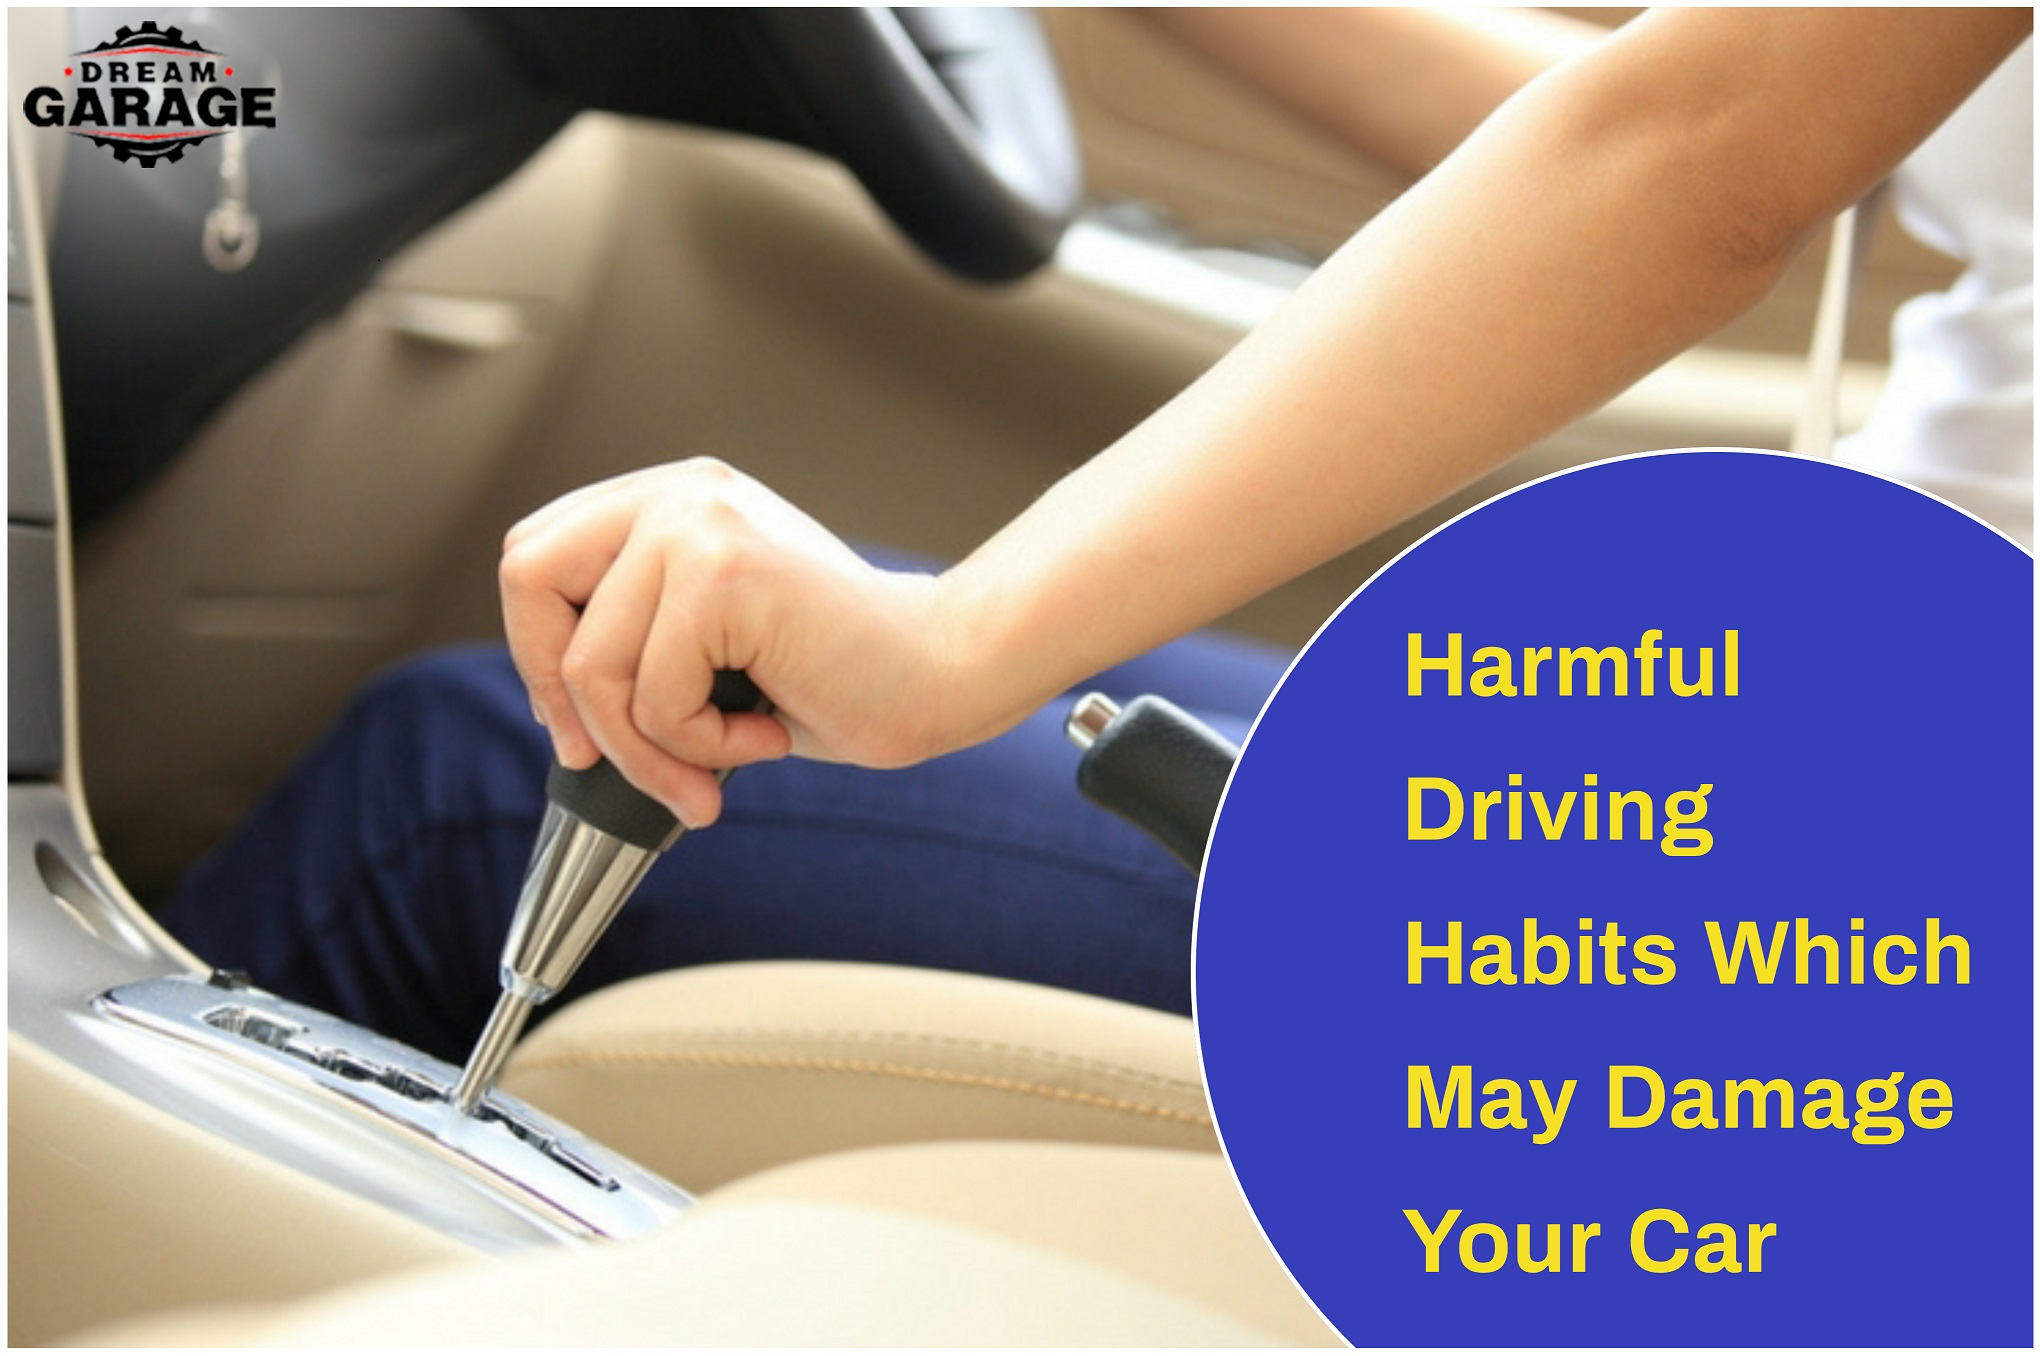 causes of harmful driving